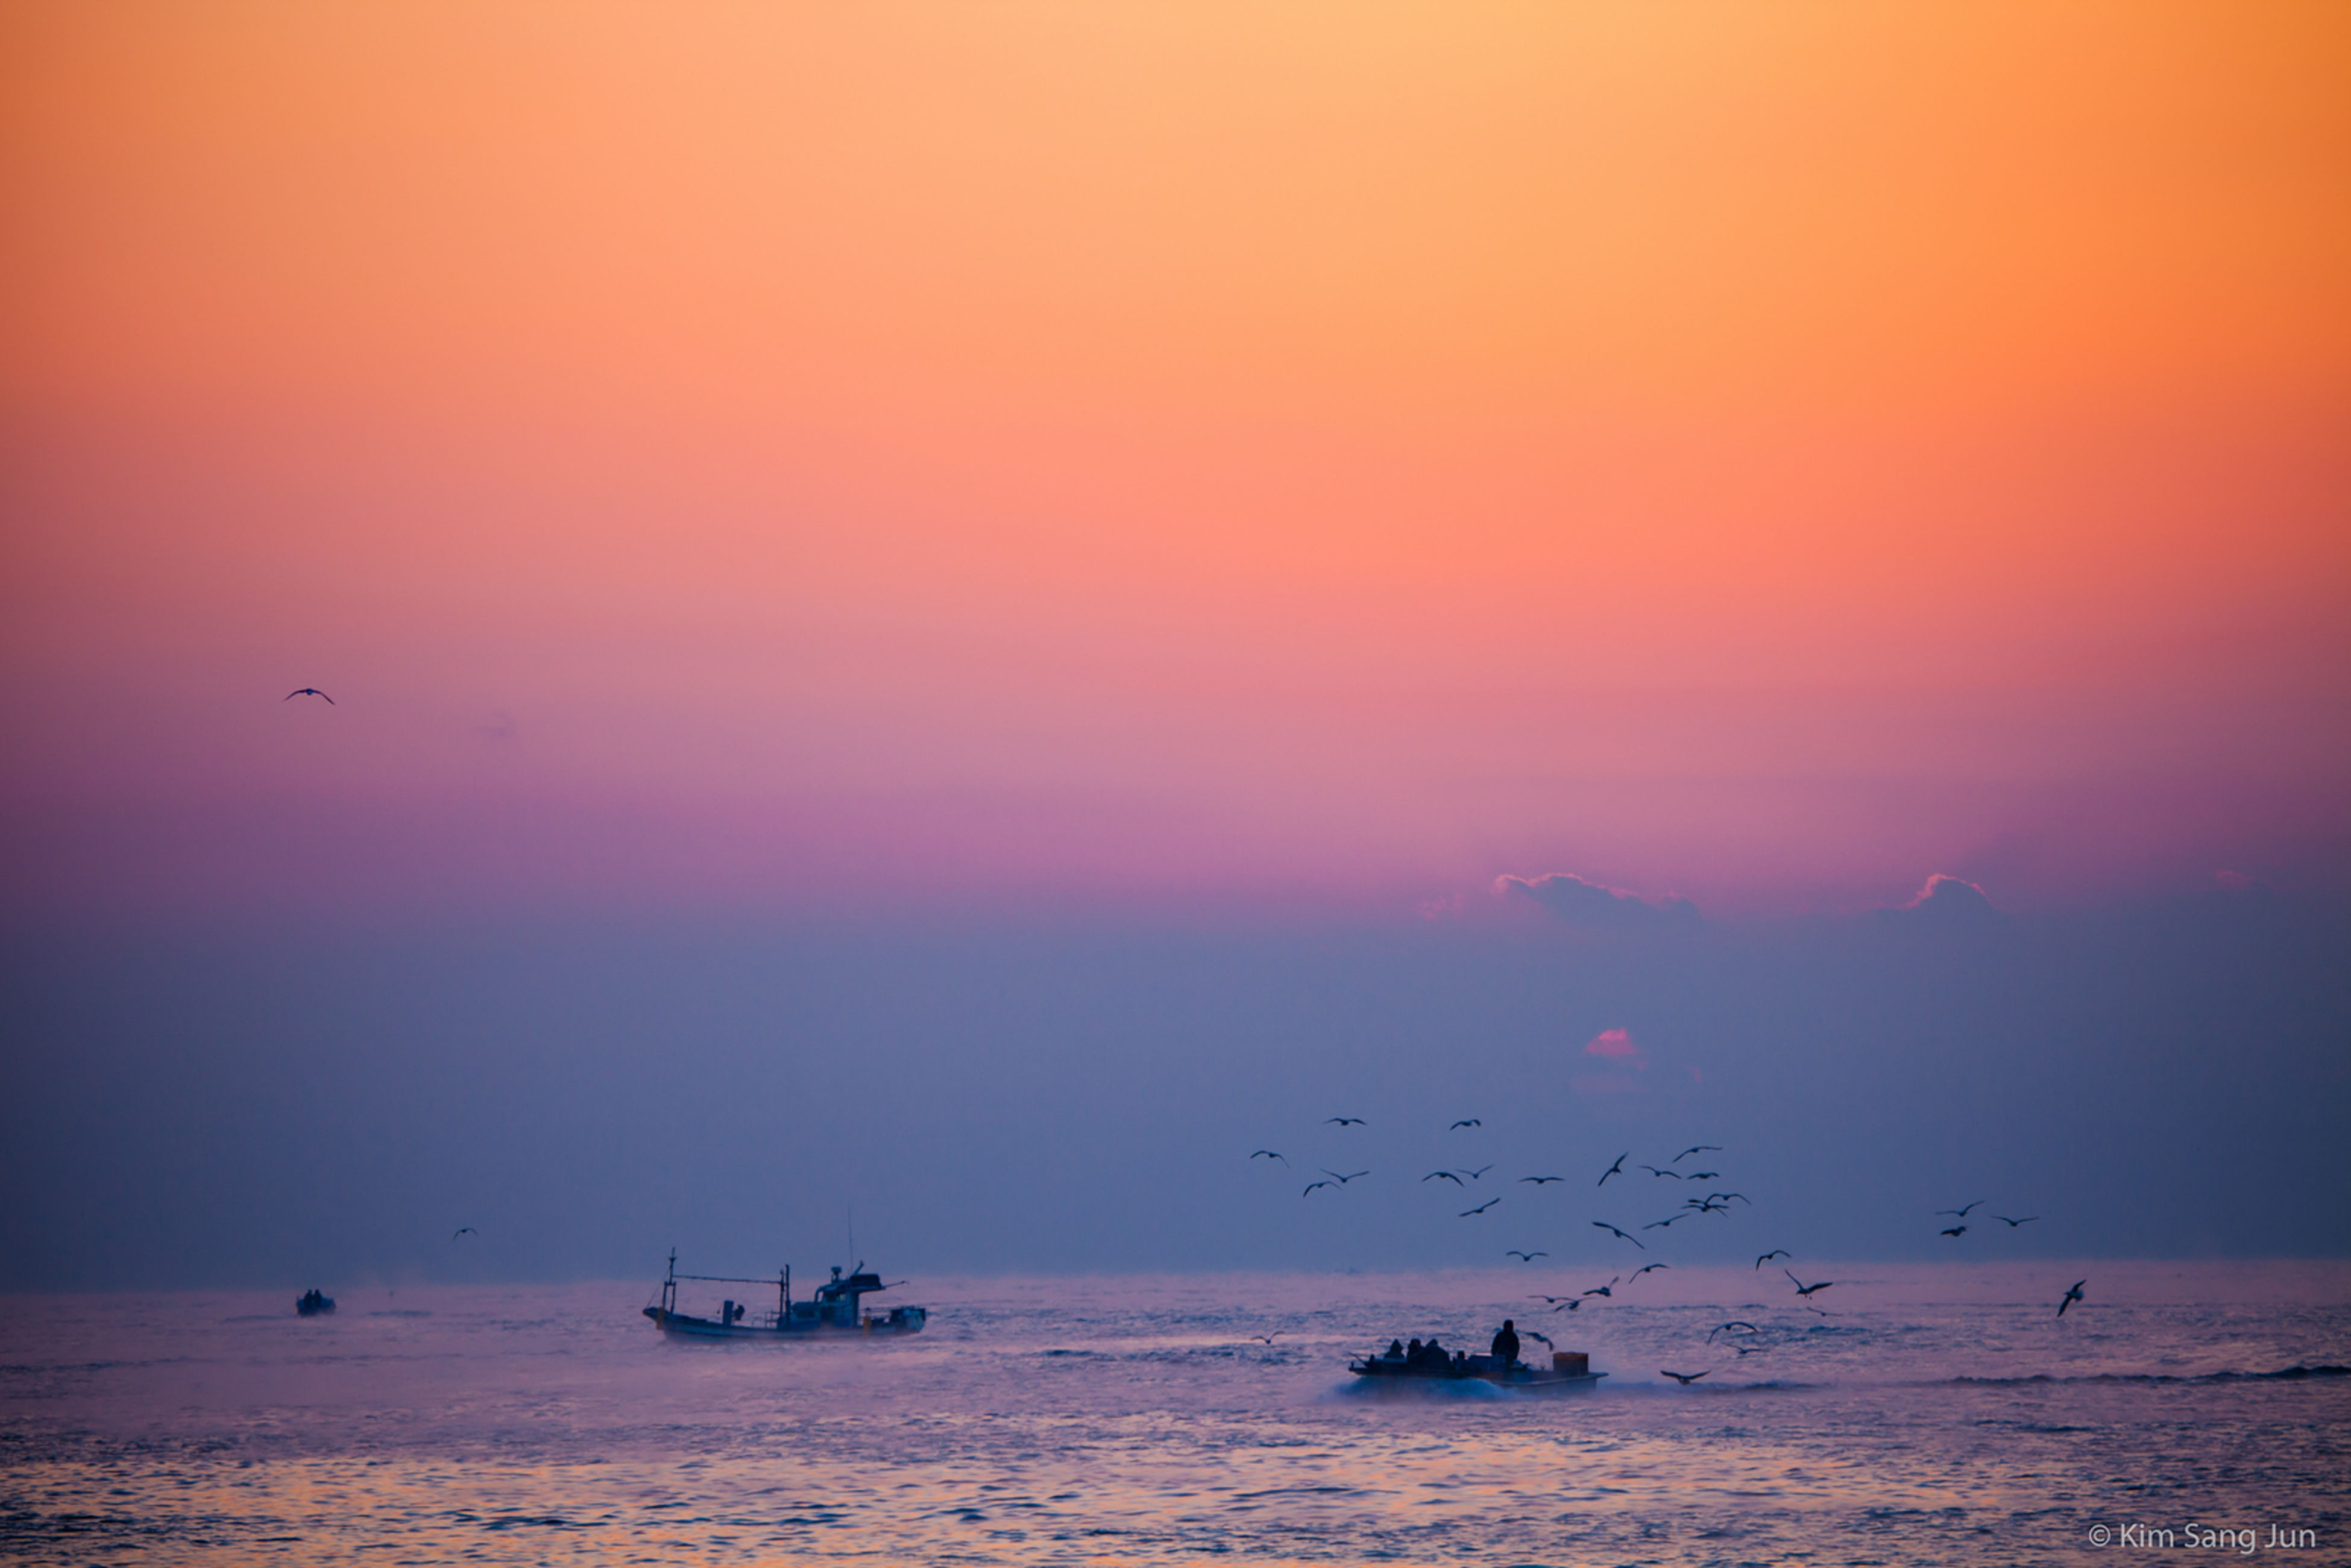 sea, sunset, water, horizon over water, transportation, flying, waterfront, scenics, sky, nautical vessel, beauty in nature, mode of transport, silhouette, orange color, boat, nature, tranquil scene, tranquility, idyllic, bird